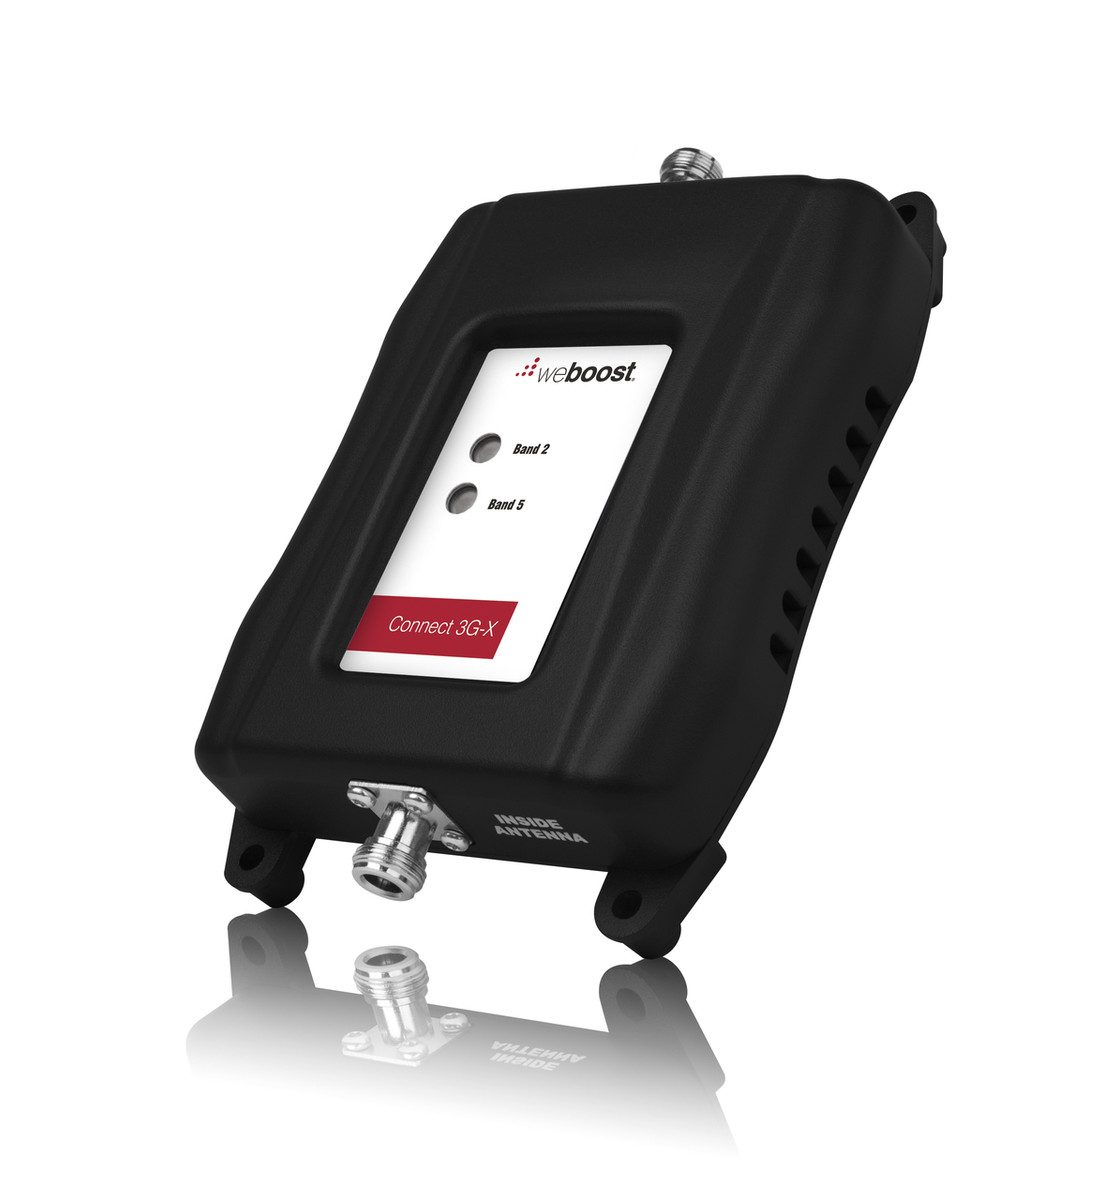 weBoost Connect 3G-X Cell Phone Signal Booster | 470105 (WA470105) | Alt View